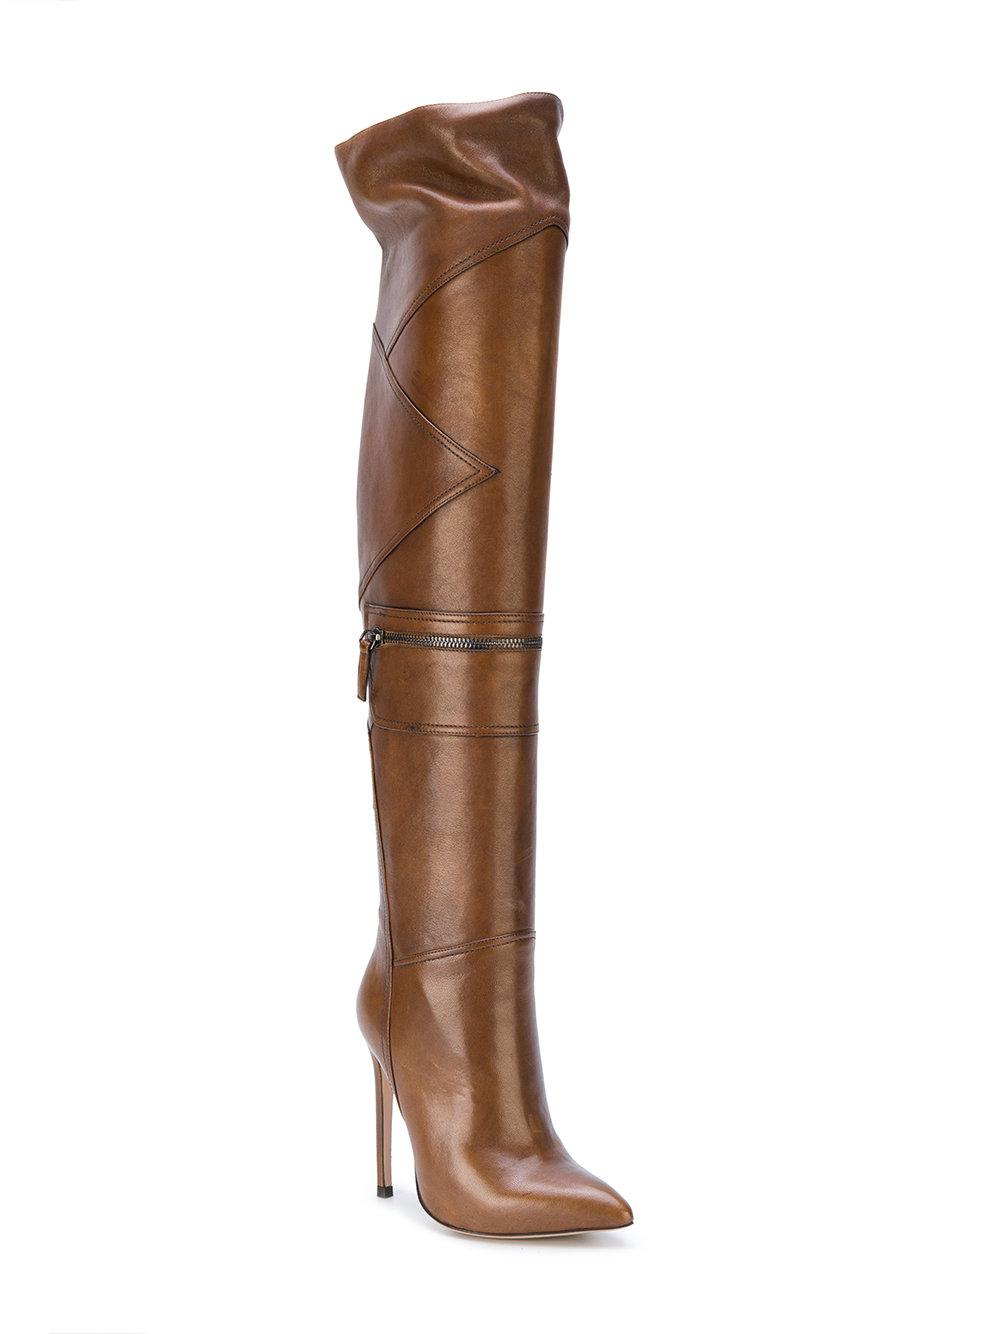 d2916b9cccd Lyst - Gianni Renzi Thigh High Panelled Boots in Brown